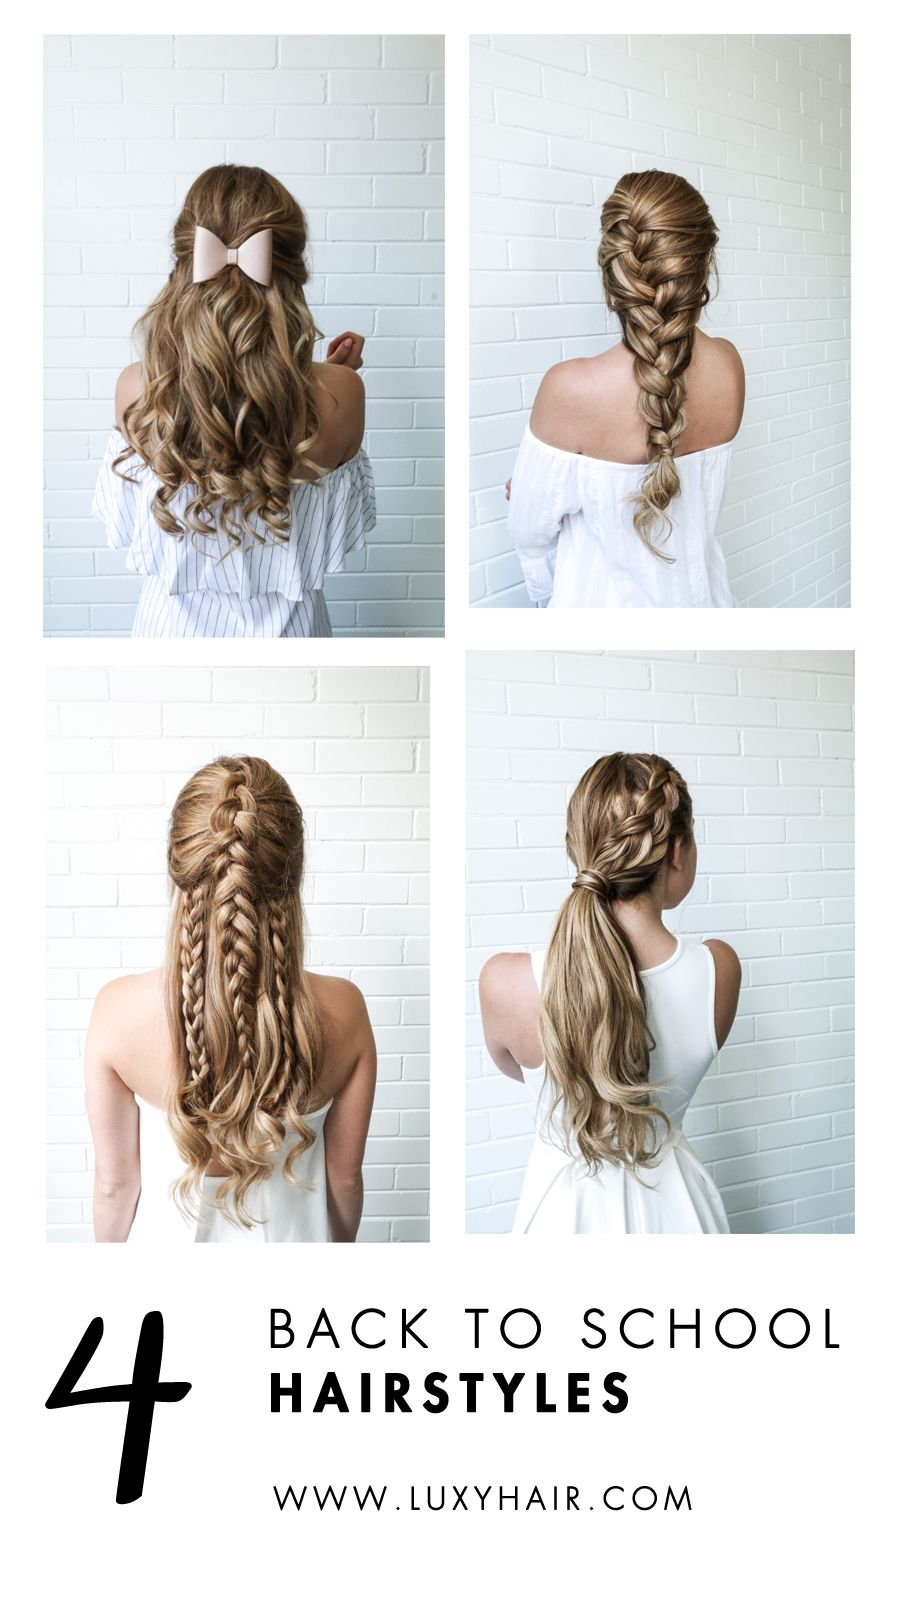 Todayus weure sharing super easy back to school hairstyles on the